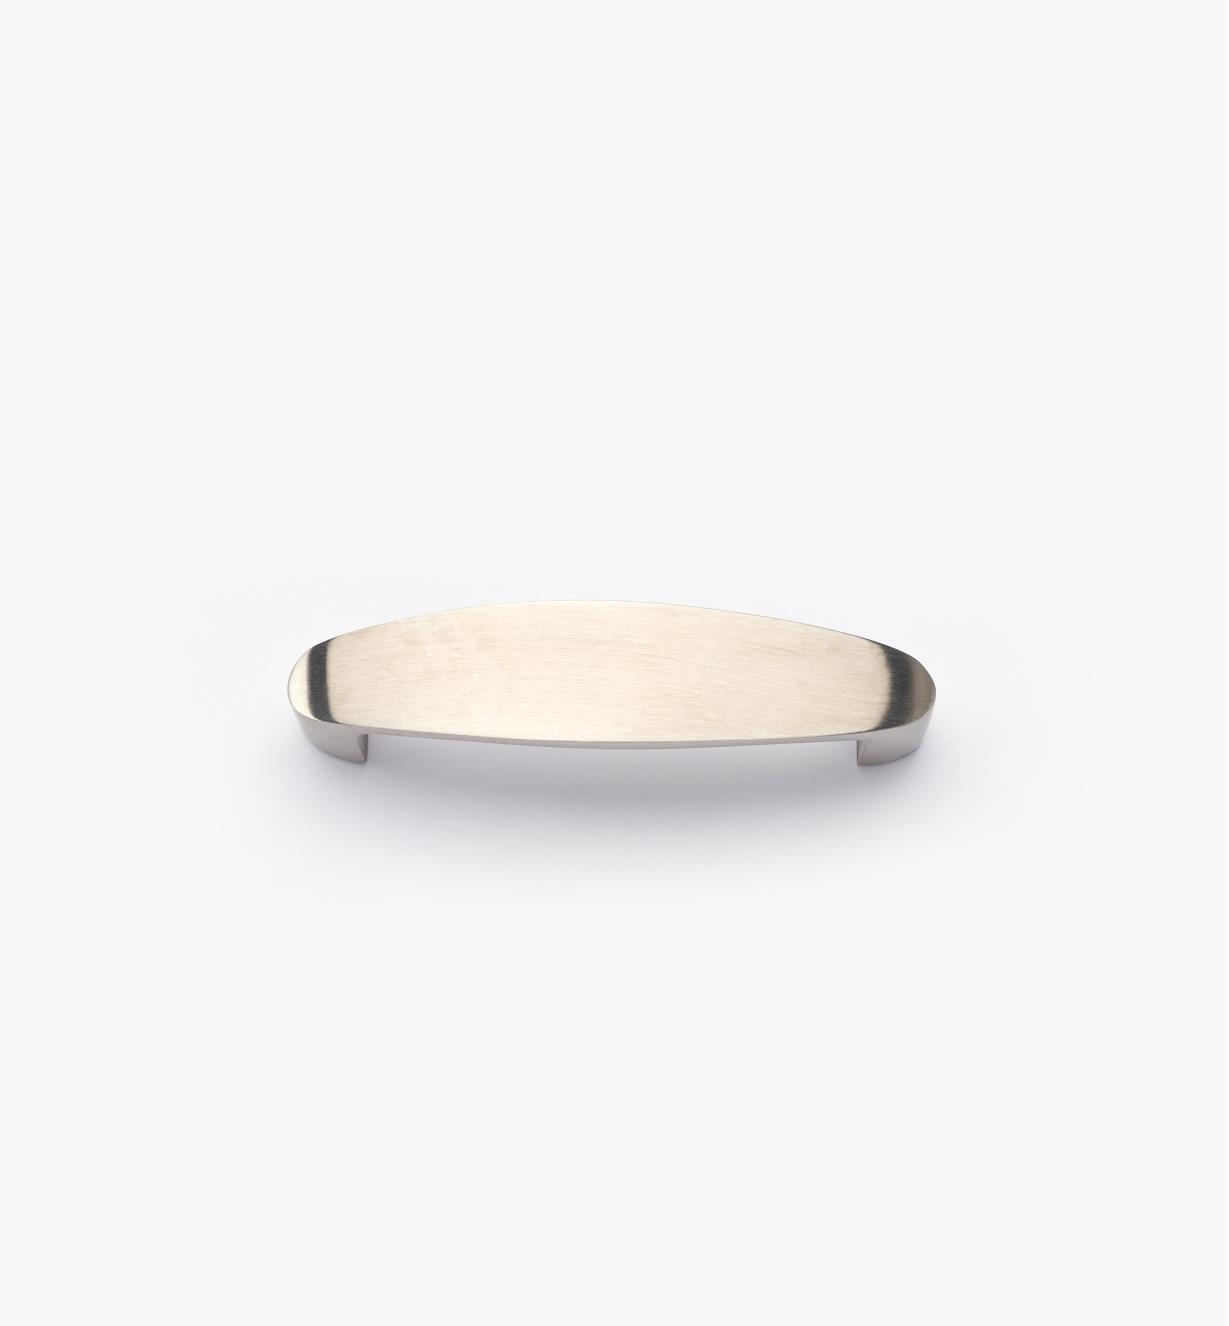 01W8210 - 64mm Plain Oval